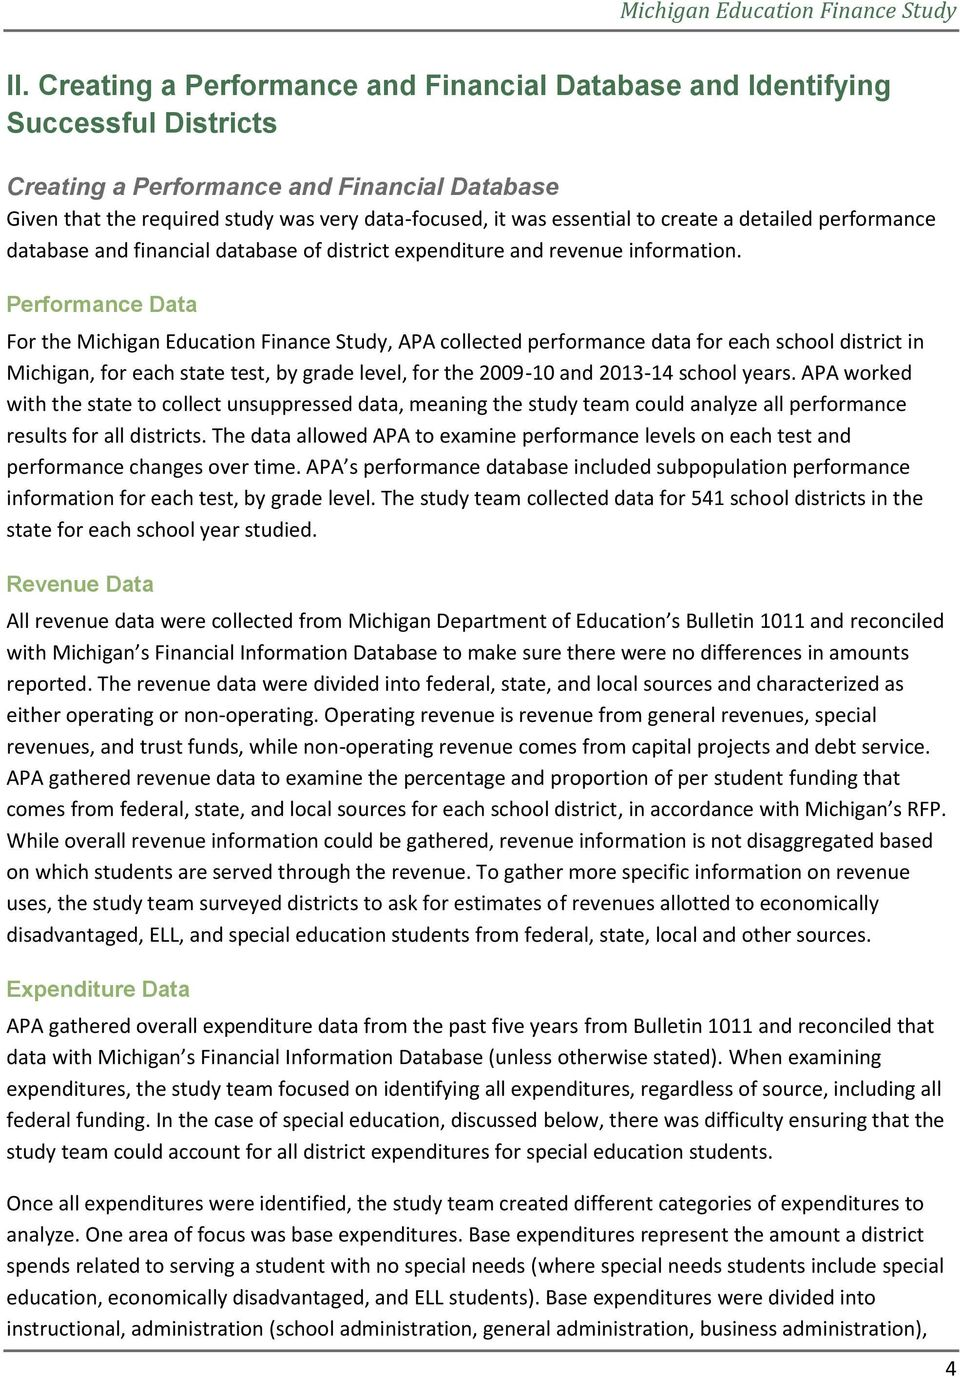 Performance Data For the Michigan Education Finance Study, APA collected performance data for each school district in Michigan, for each state test, by grade level, for the 2009-10 and 2013-14 school